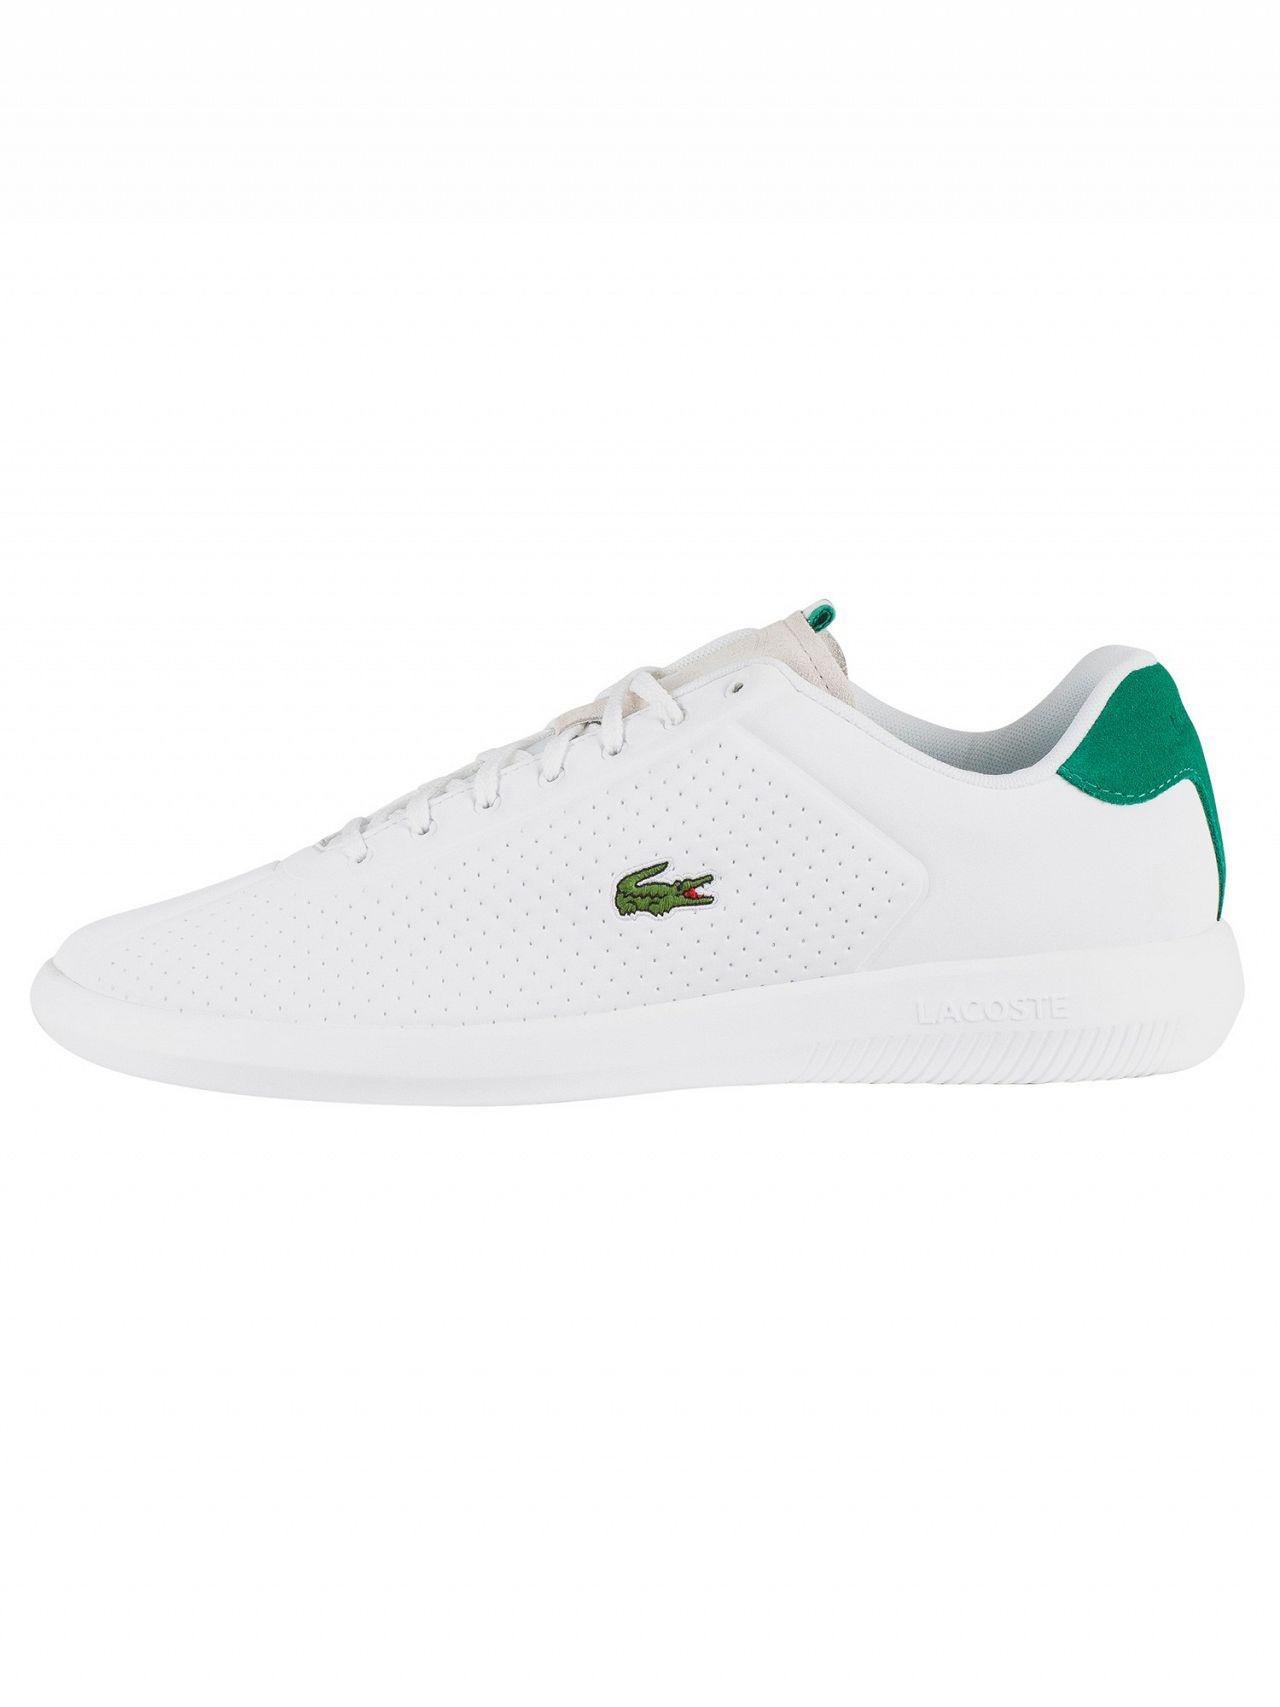 63cdb17d9501f Lyst - Lacoste White green Avance 119 1 Sma Trainers in White for Men